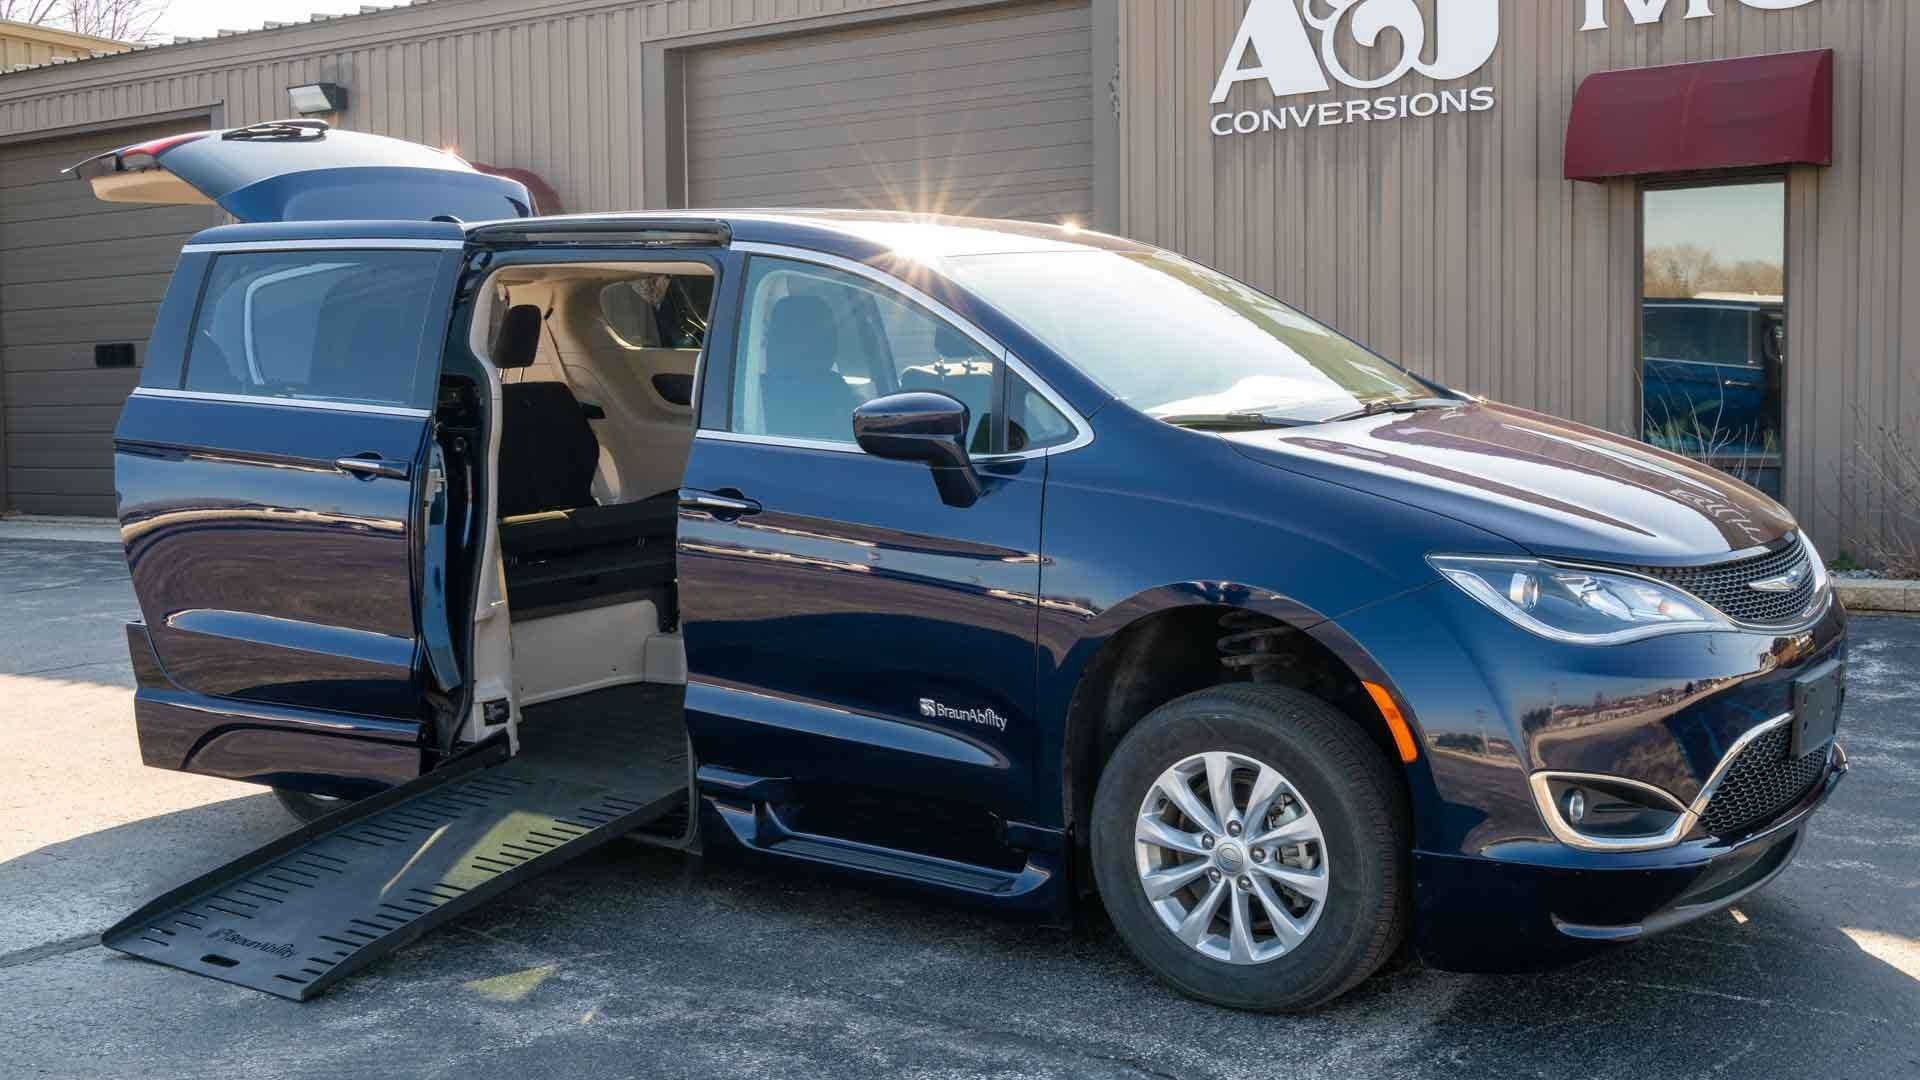 2018 Chrysler Pacifica | Conversion: BraunAbility Chrysler Pacifica Foldout XT